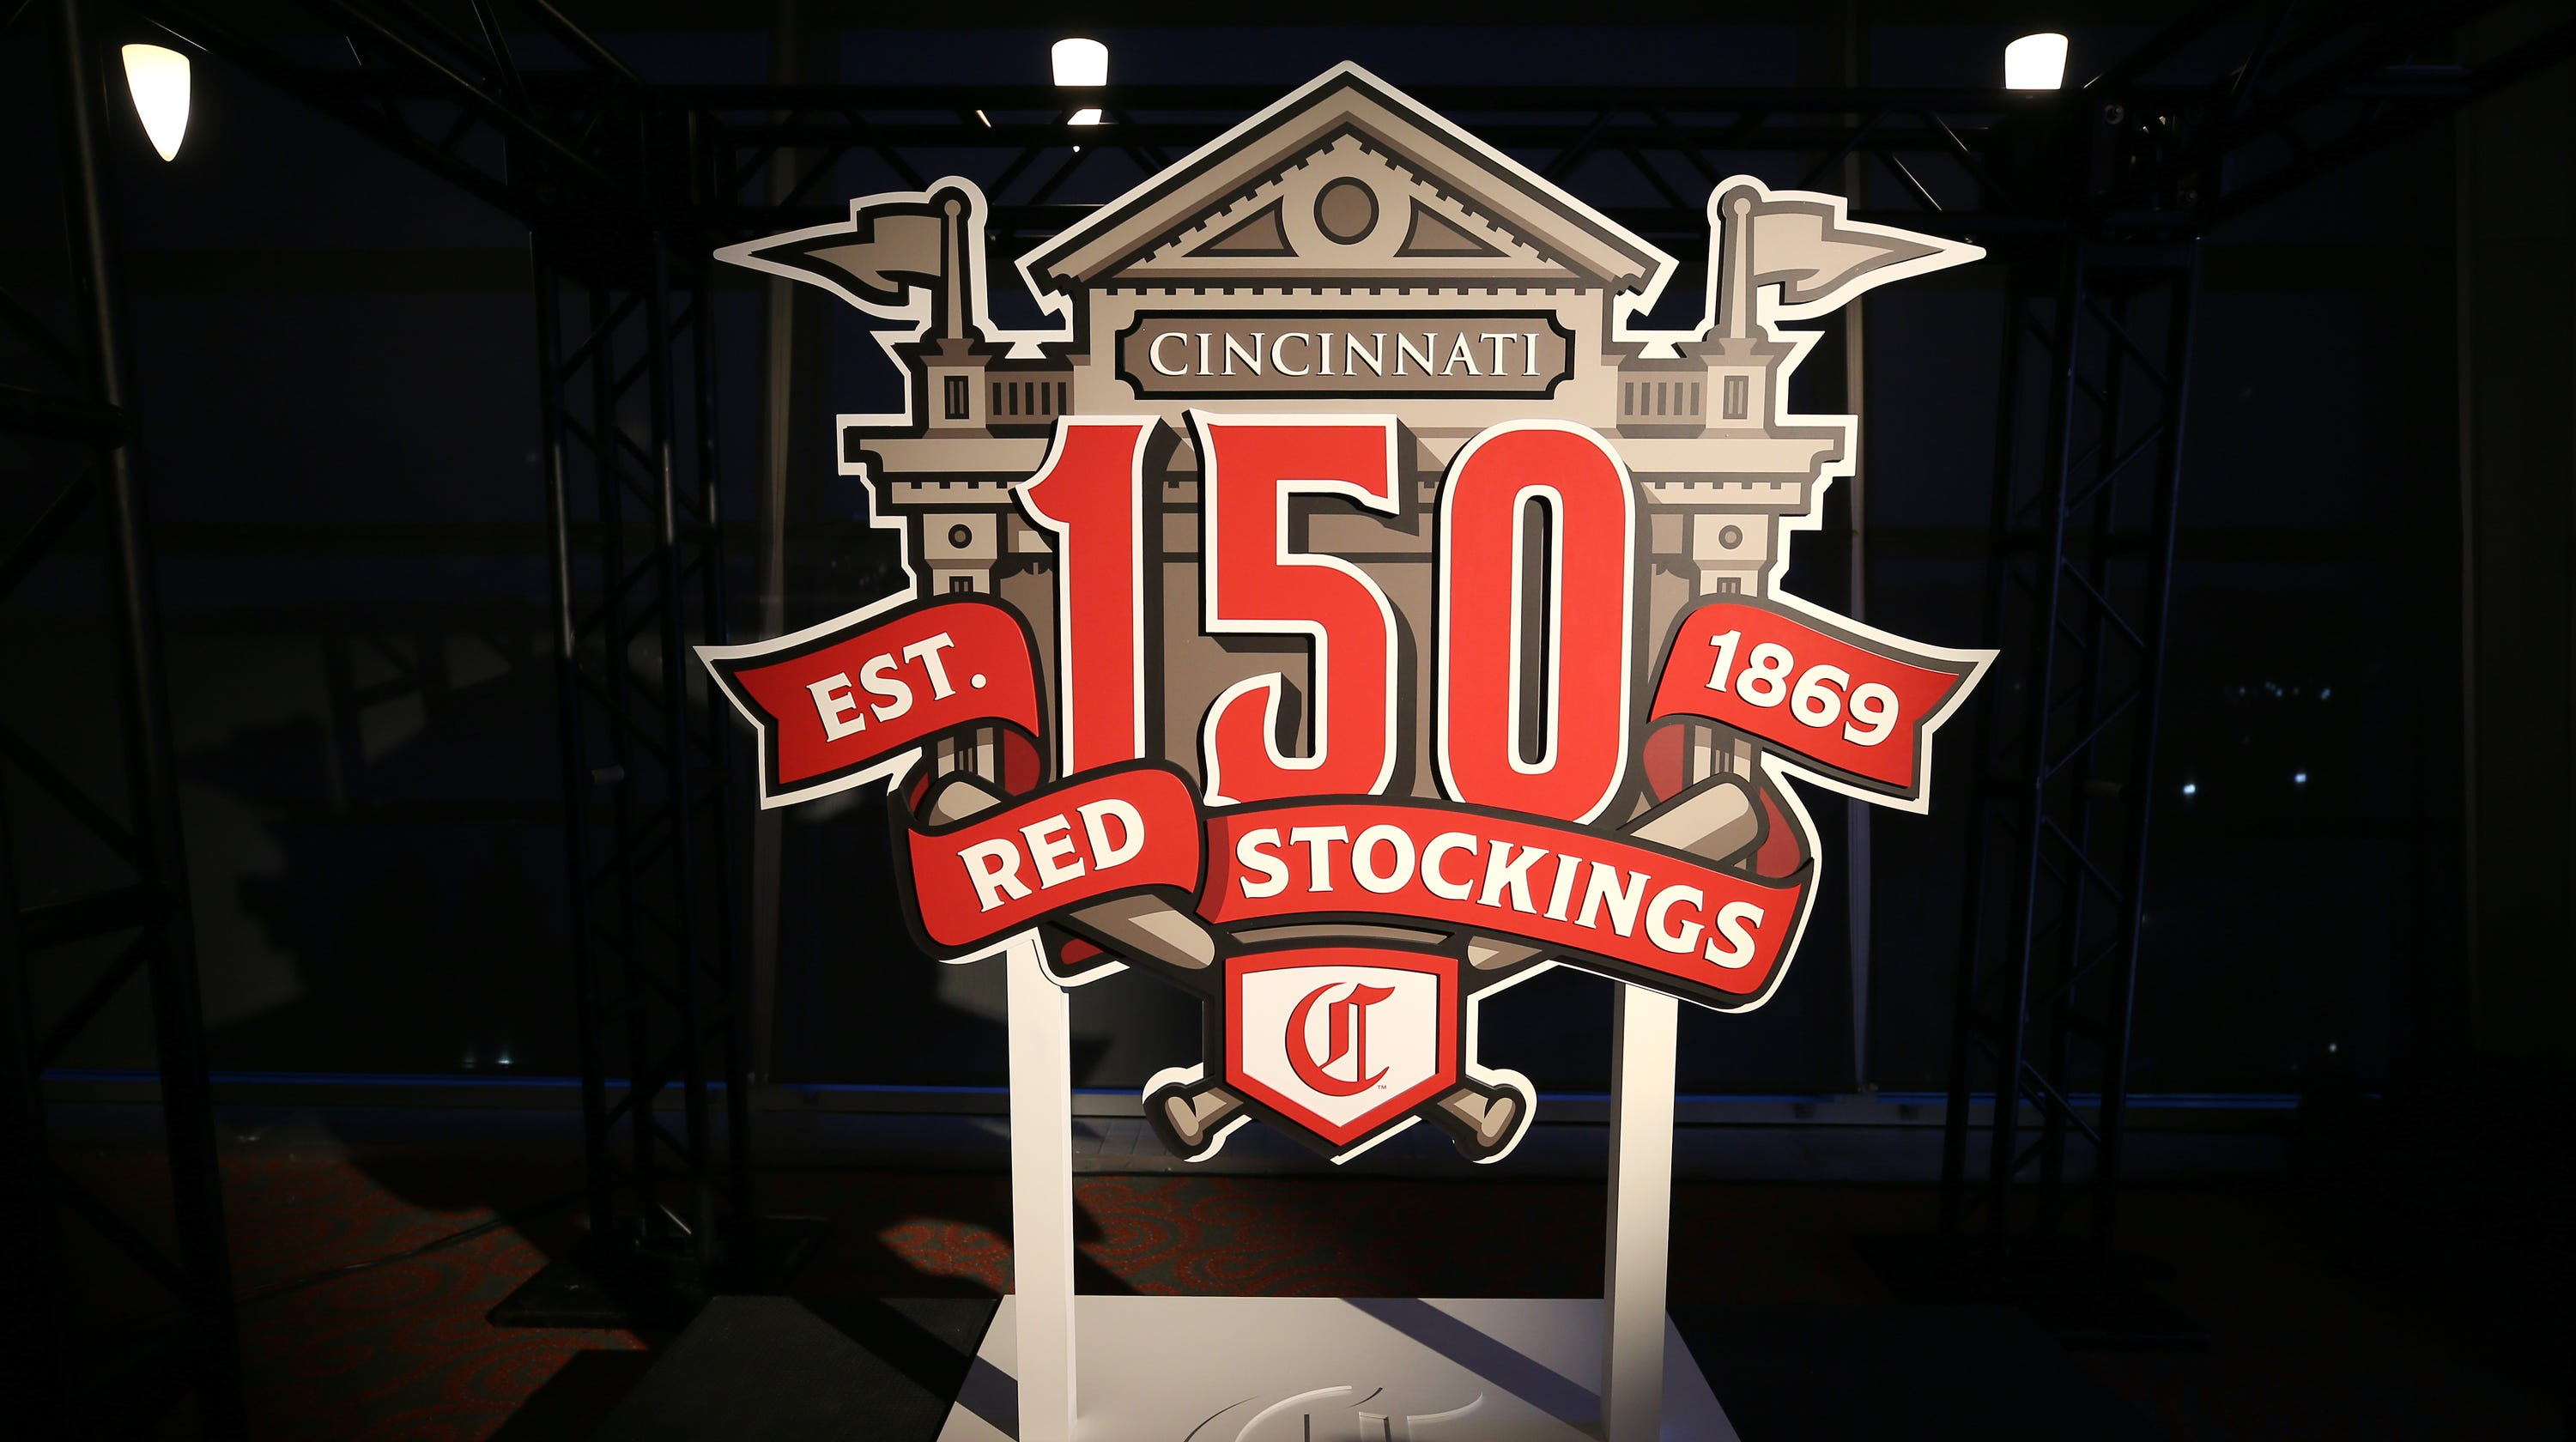 f4e619443 For their 150th year, Reds going retro